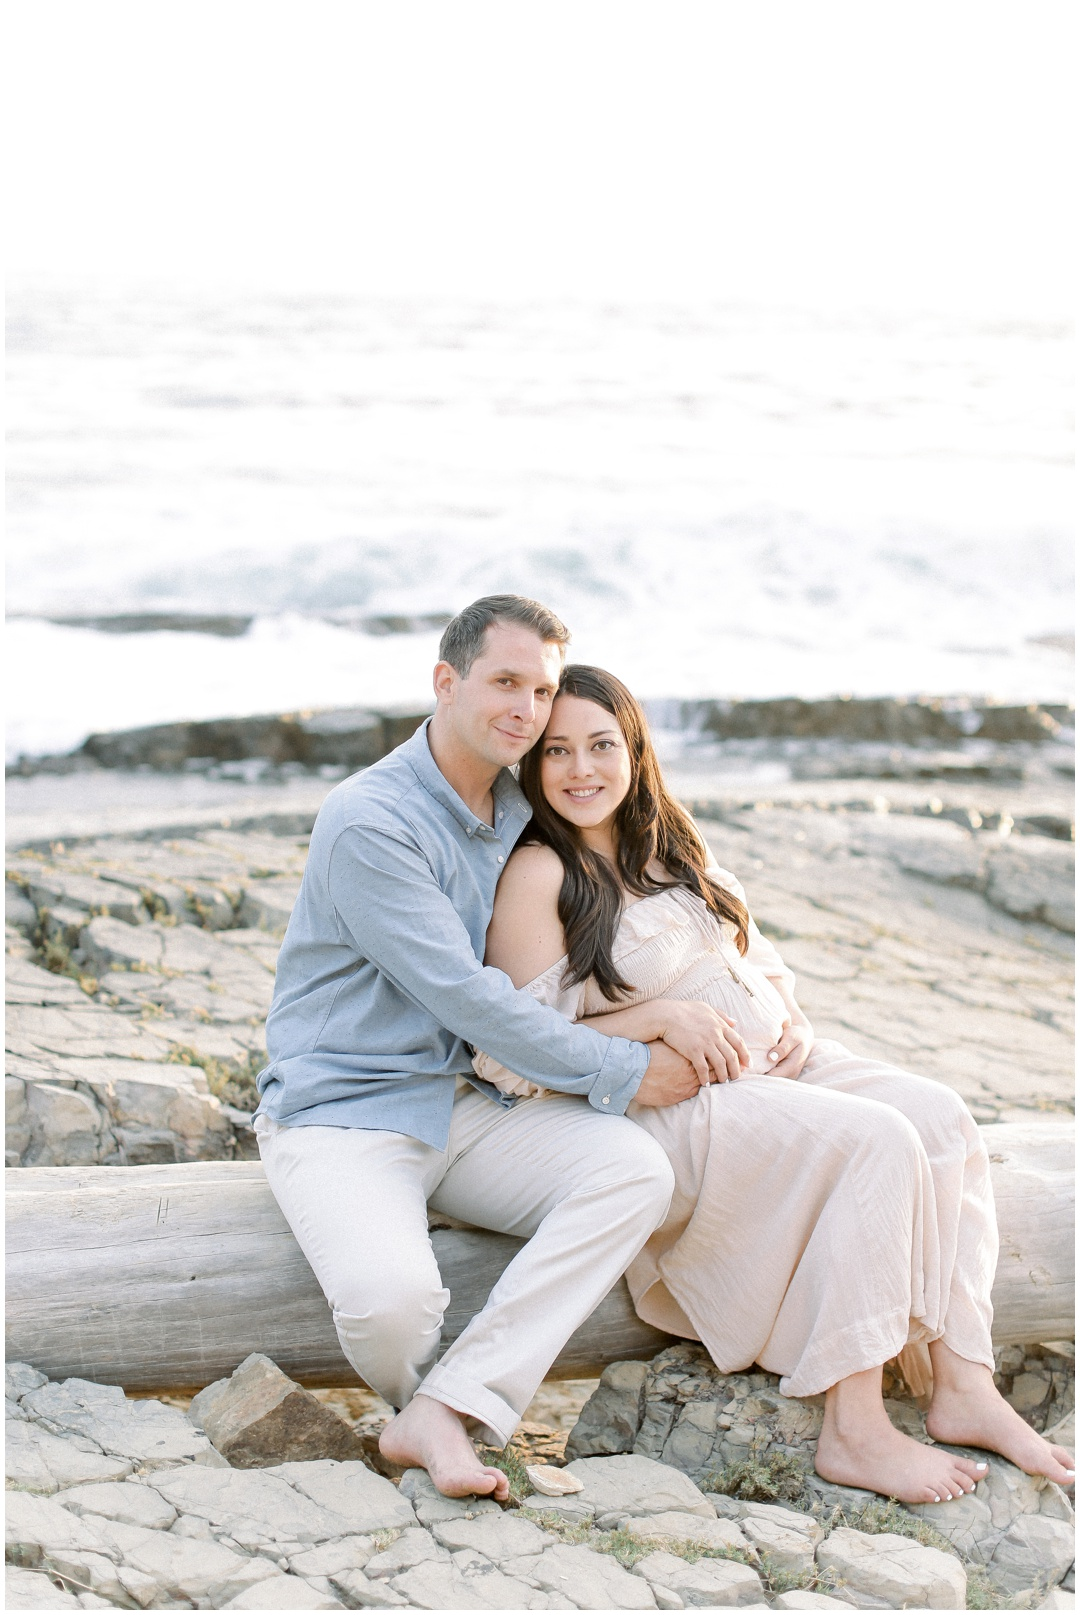 Newport_Beach_Newborn_Light_Airy_Natural_Photographer_Newport_Beach_Photographer_Orange_County_Maternity_Photographer_Cori_Kleckner_Photography_Newport_Beach_Photographer_Candice_Byle_Candice_Fillippini_Kevin_Fillippini__4159.jpg